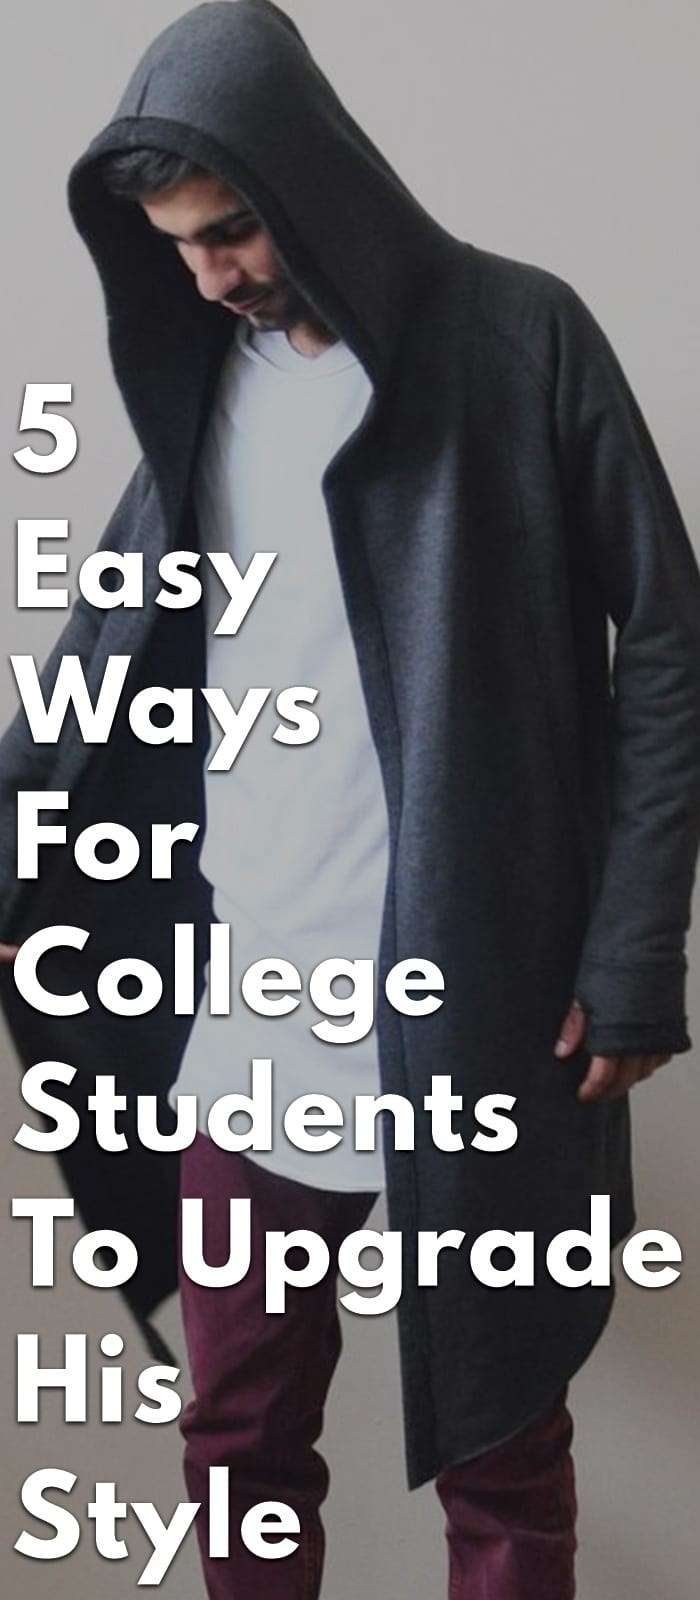 5-Easy-Ways-For-College-Students-To-Upgrade-His-Style